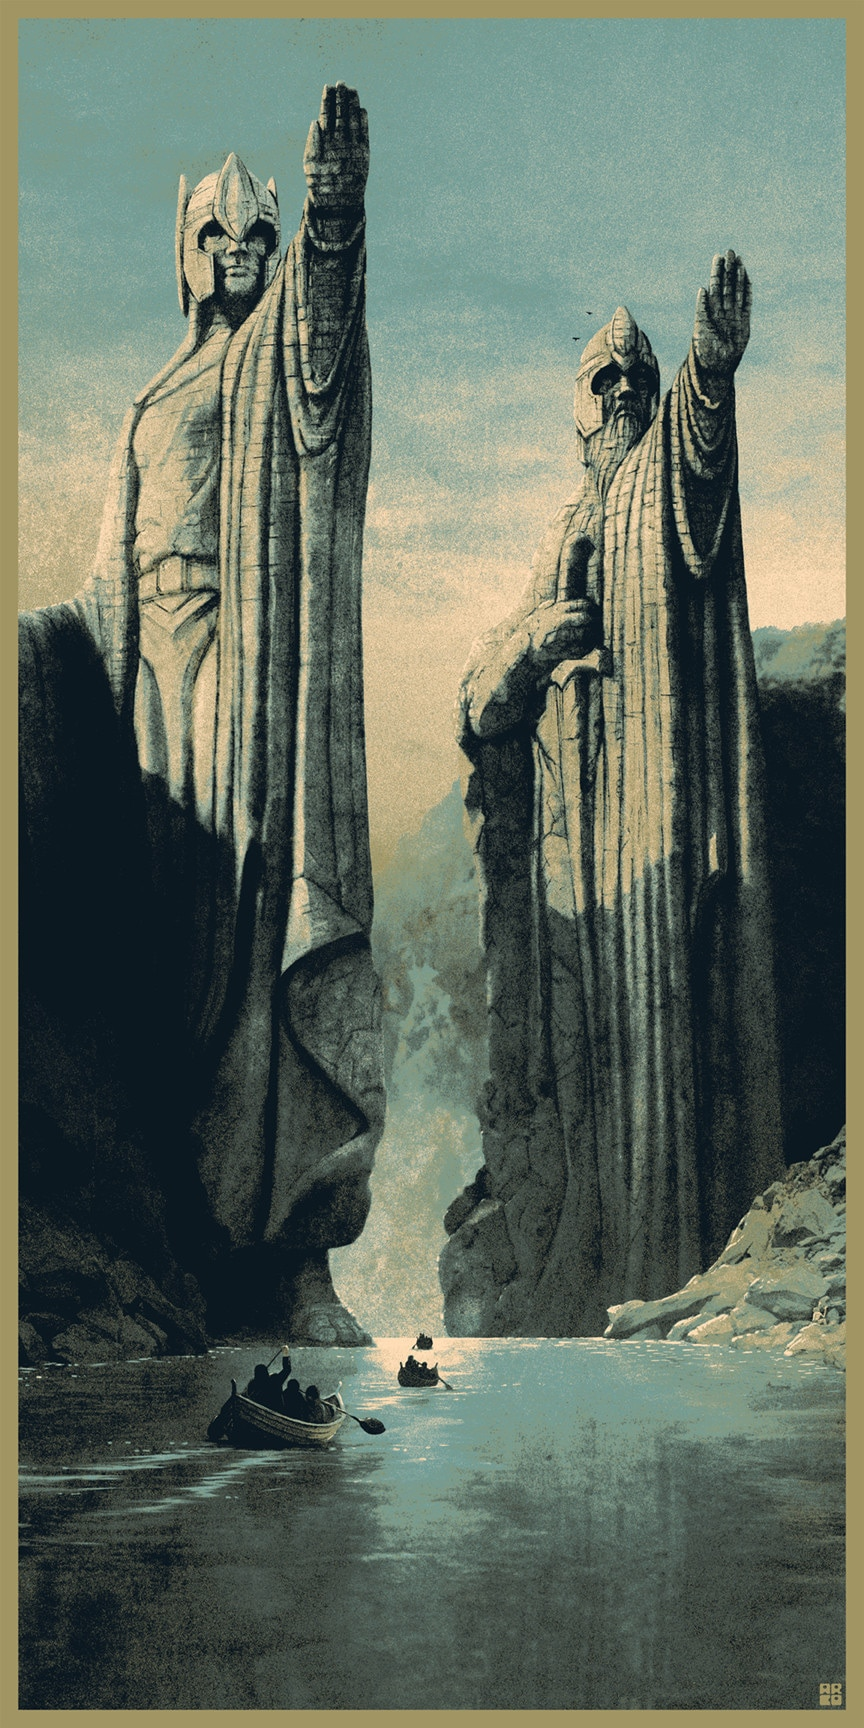 The Argonath, long have I desired to look upon the kings of old.